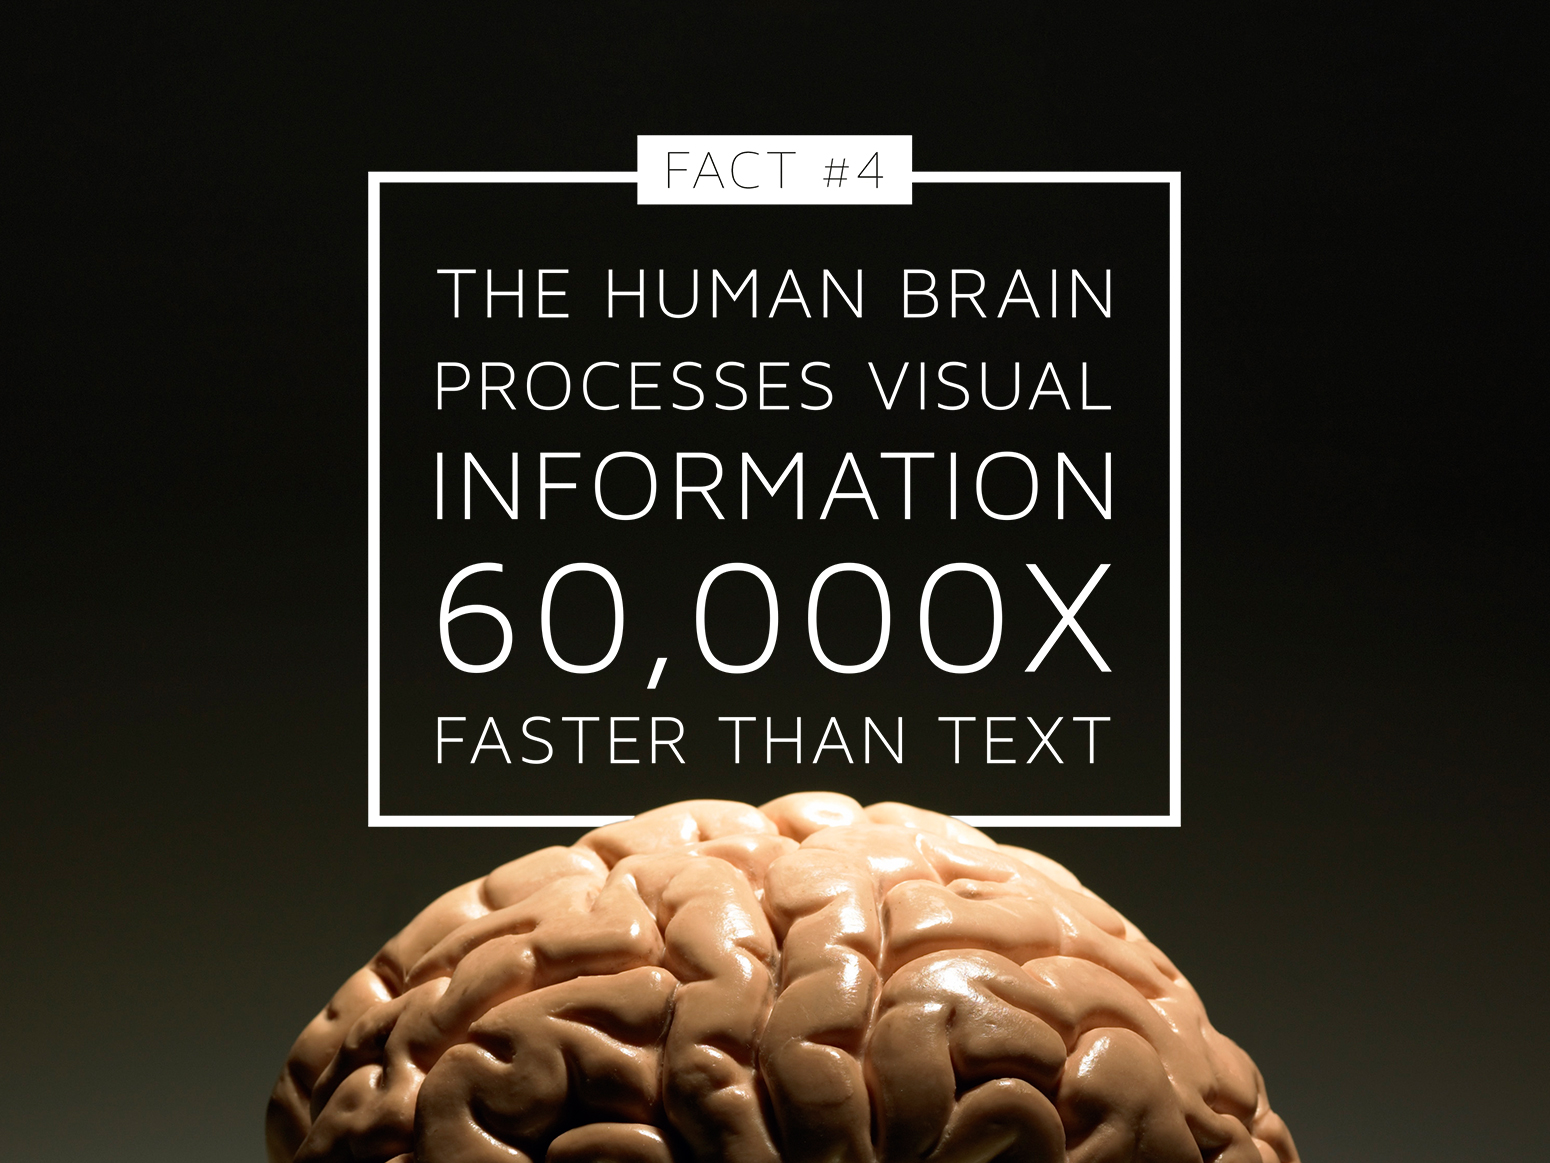 4-the-human-brain-processes-visual-information-60,000x-faster-than-text